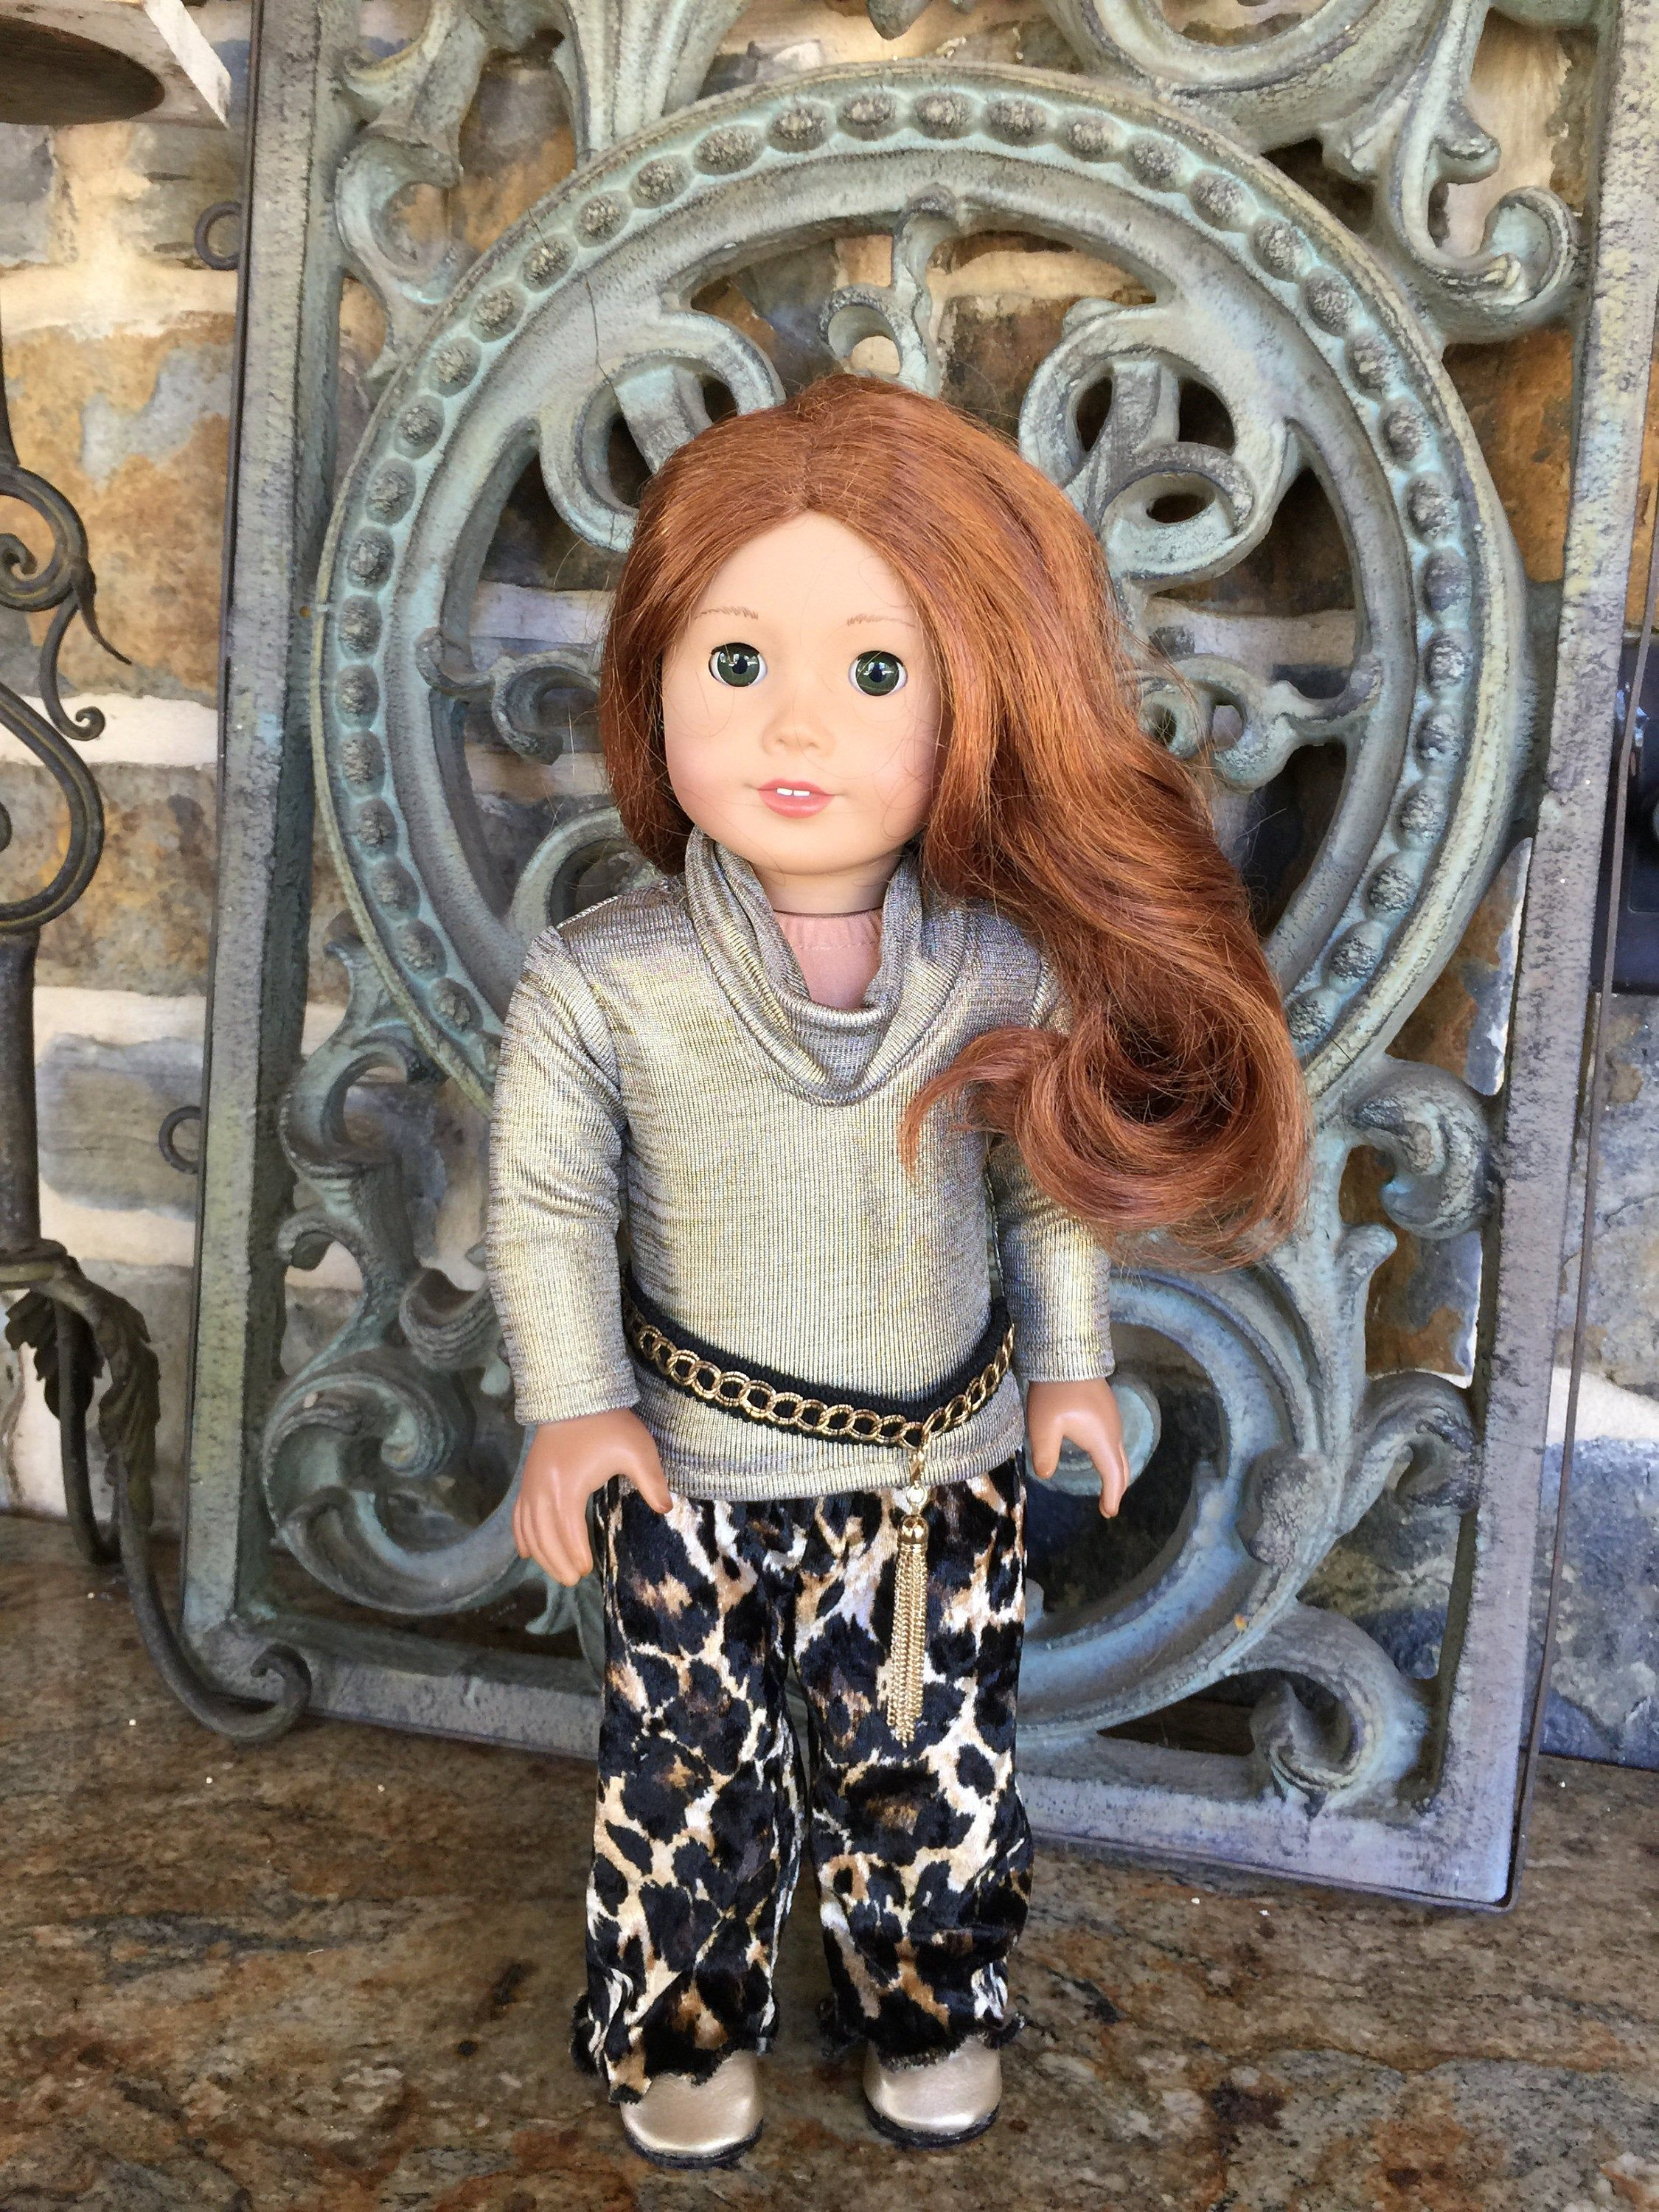 18 inch doll clothes made to fit dolls like the American Girl Doll-Velour wide leg pants-crystal necklace #18inchdollsandclothes